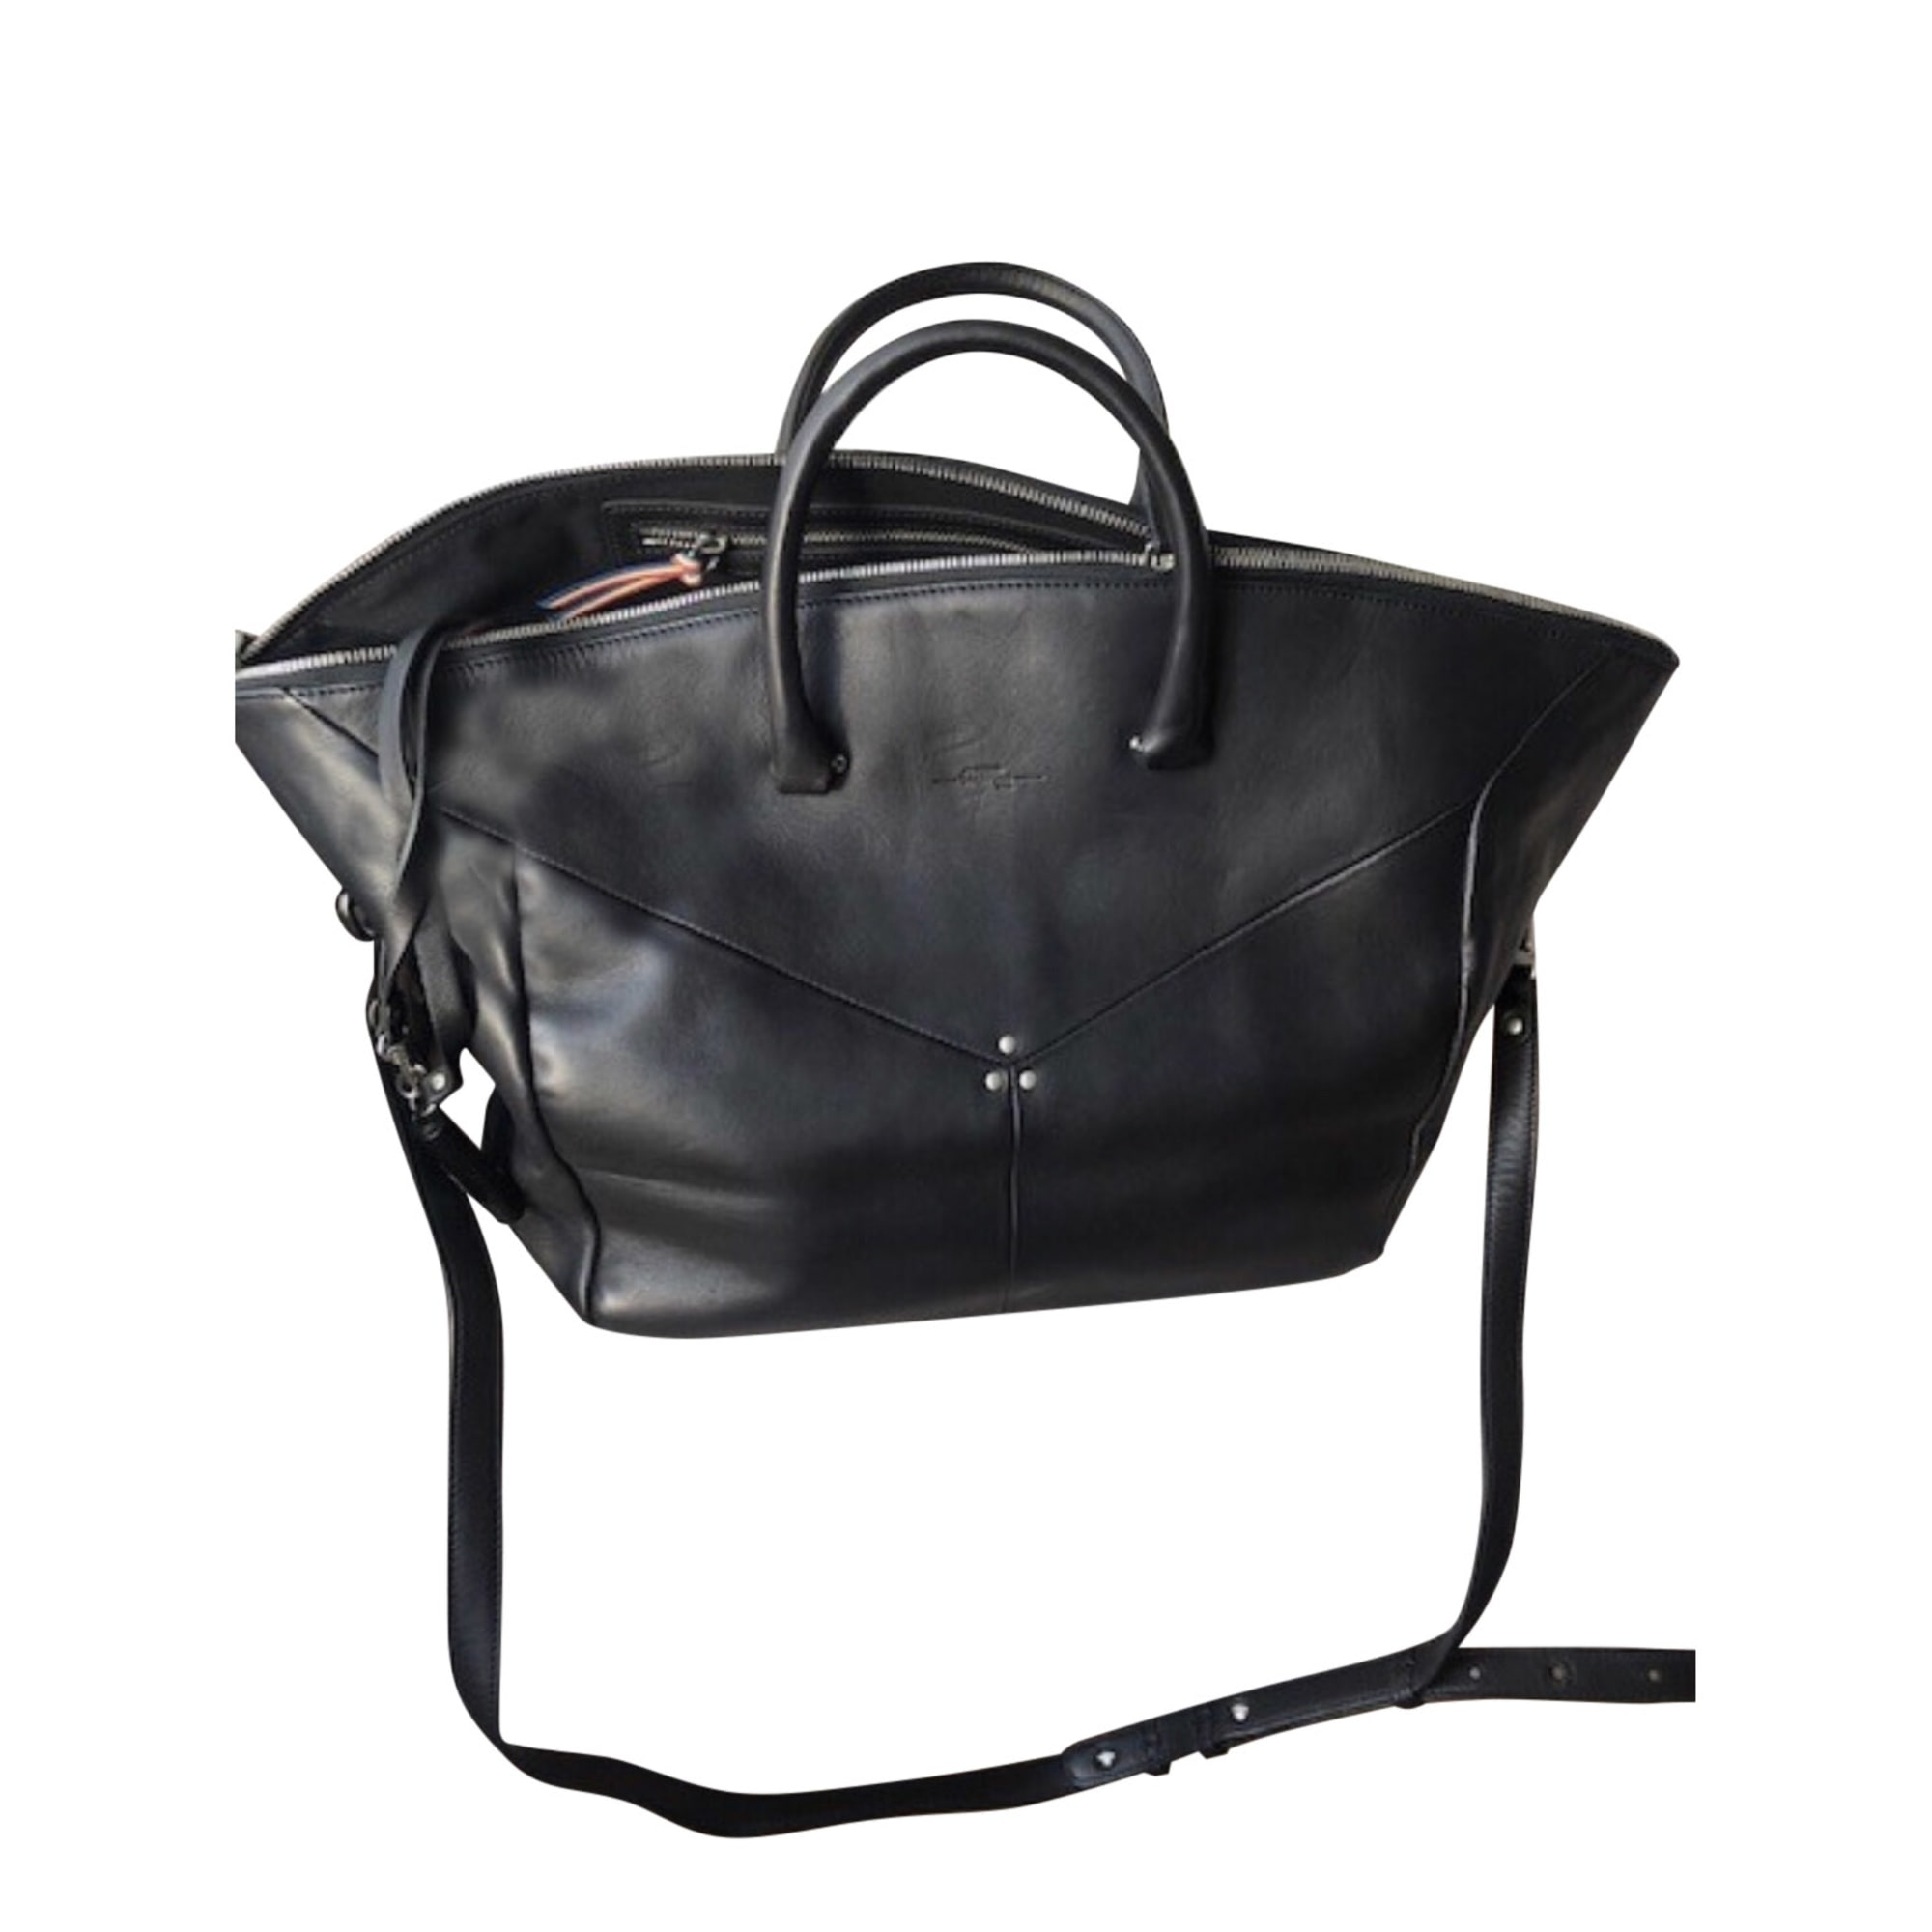 Borsa XL in pelle JEROME DREYFUSS Nero